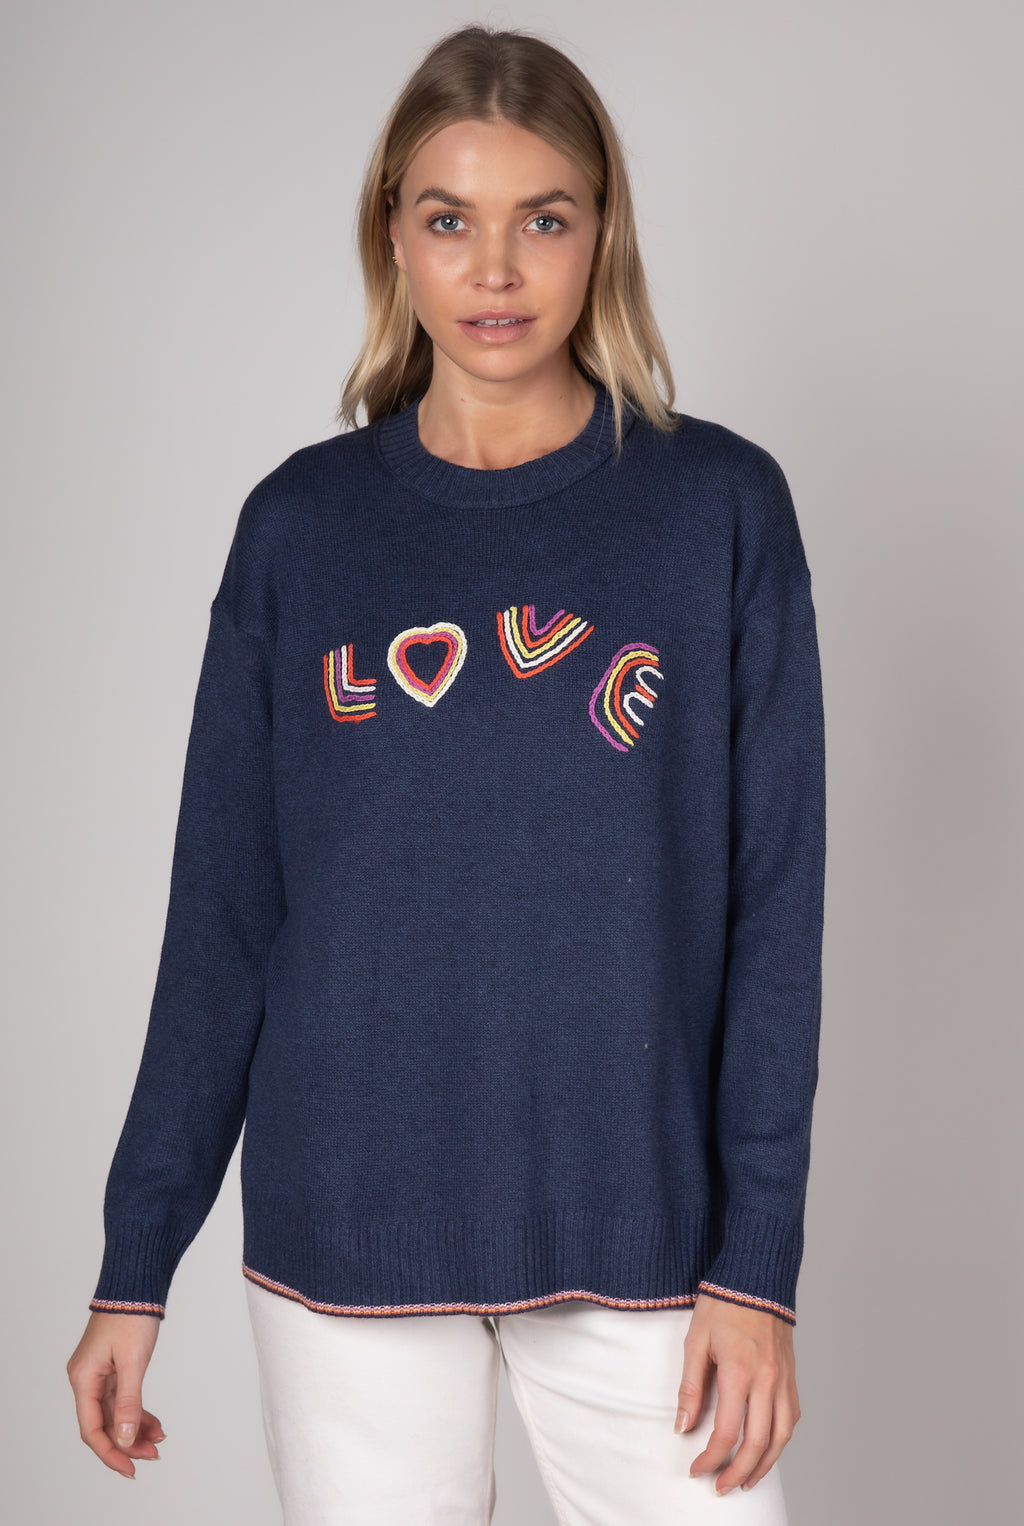 Zaket & Plover  Full of Love knit - Denim